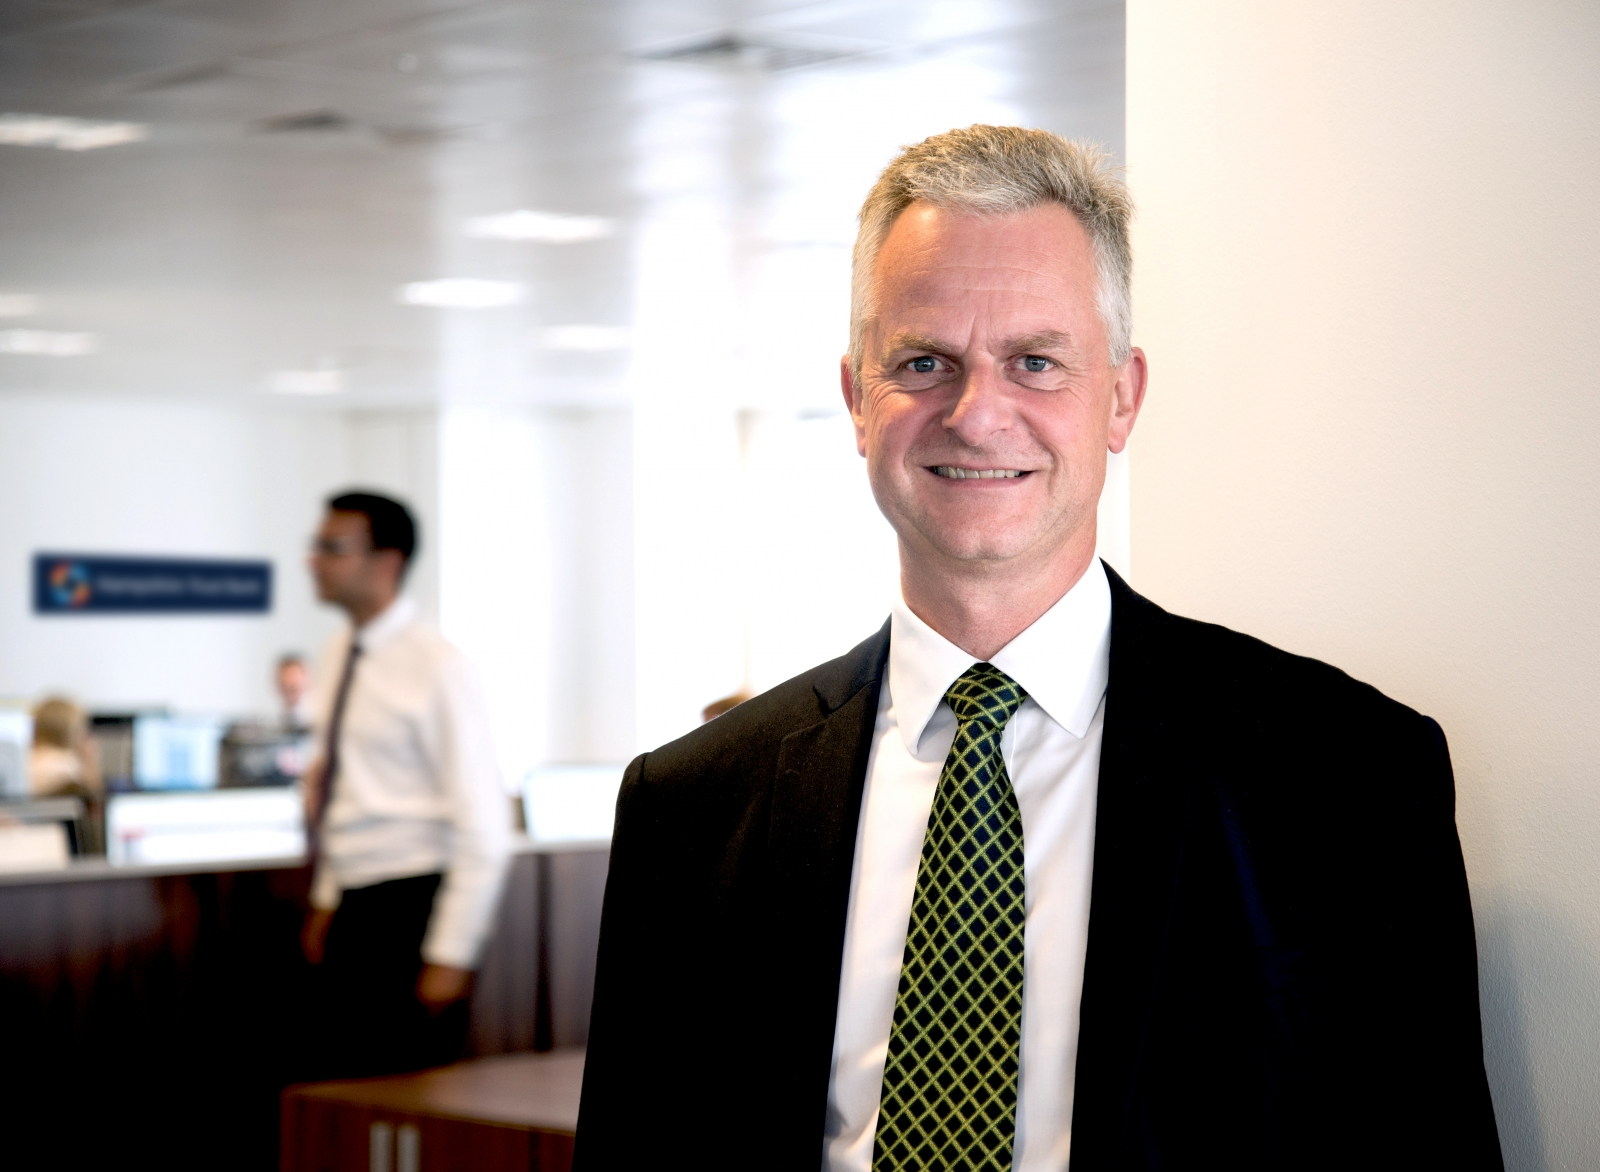 Hampshire Trust Bank CEO Mark Sismey-Durrant